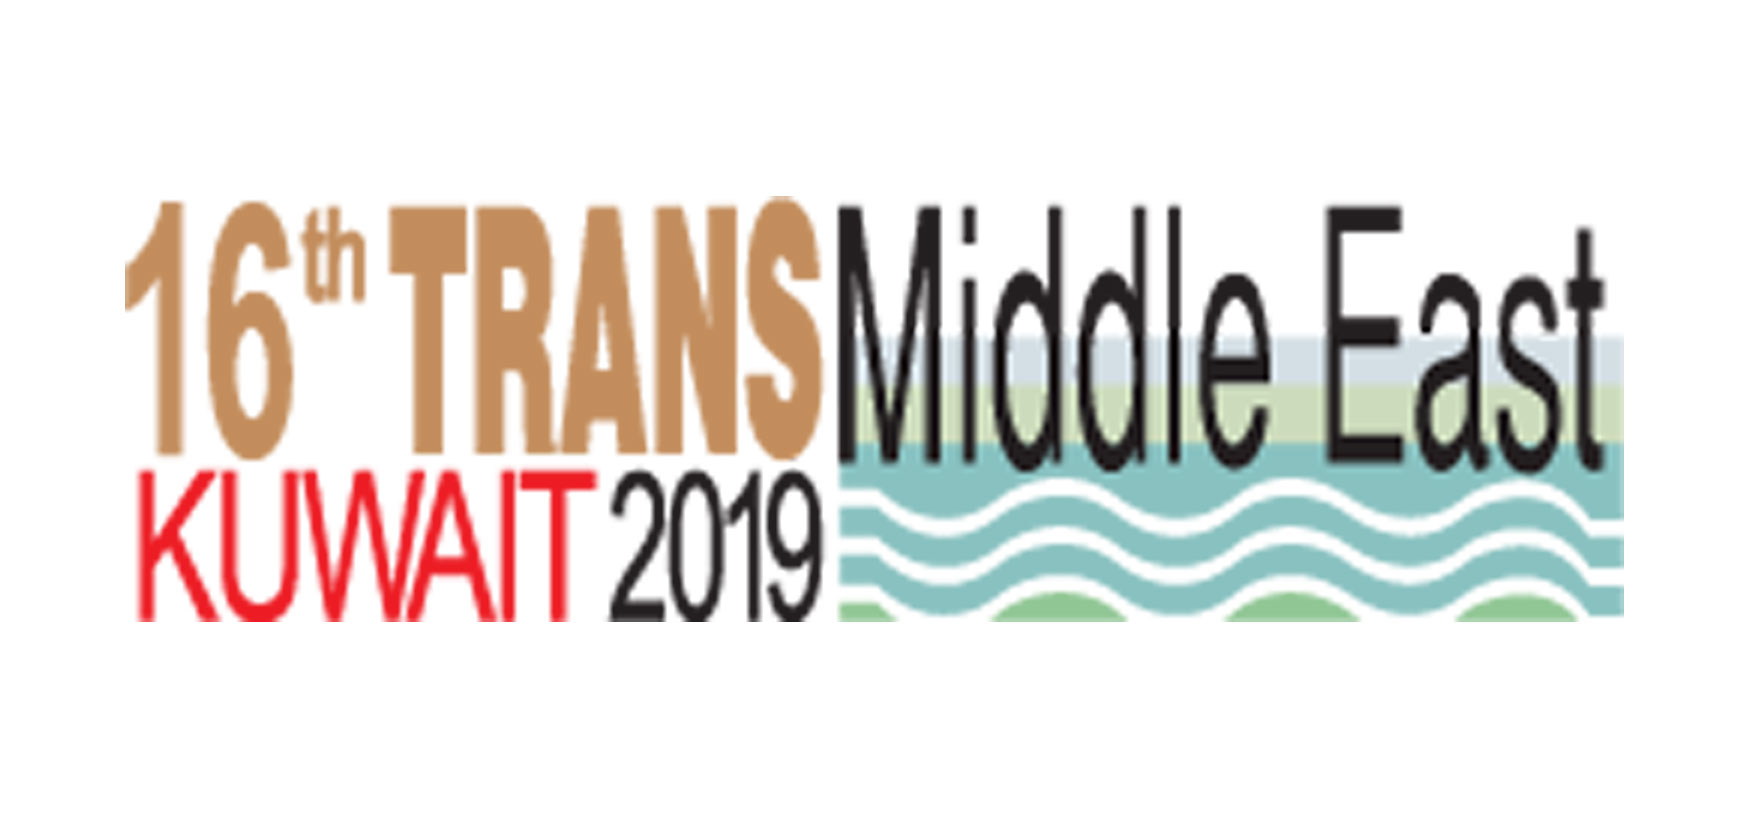 16th-trans-middle-east-2019-icon